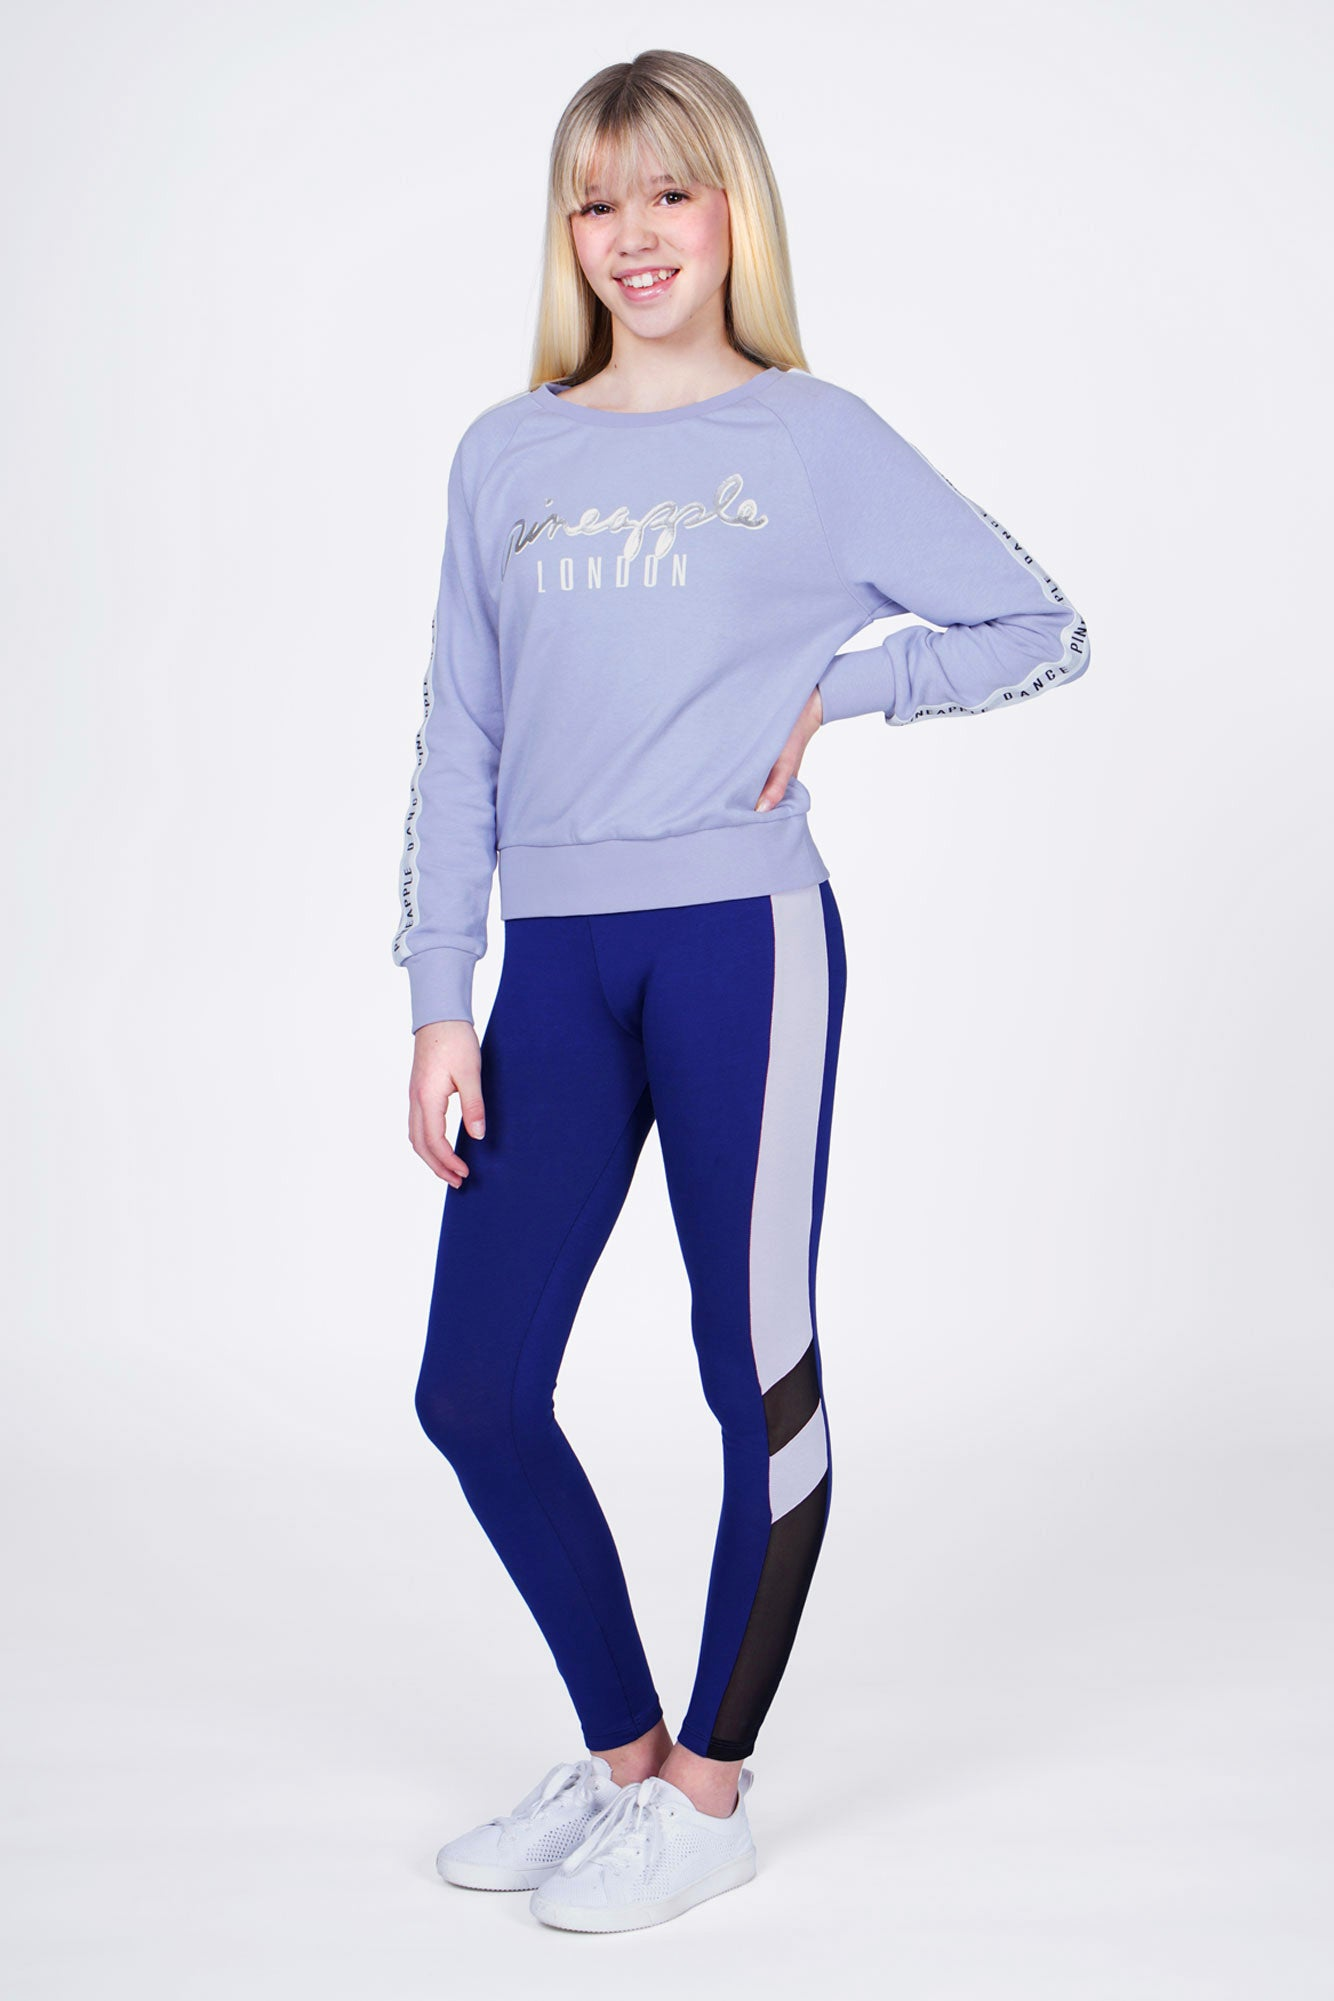 Girl wearing Blue Jacquard Sweat Top with silver logo and white logo sleeve stripes, and Blue Mesh Panel Leggings